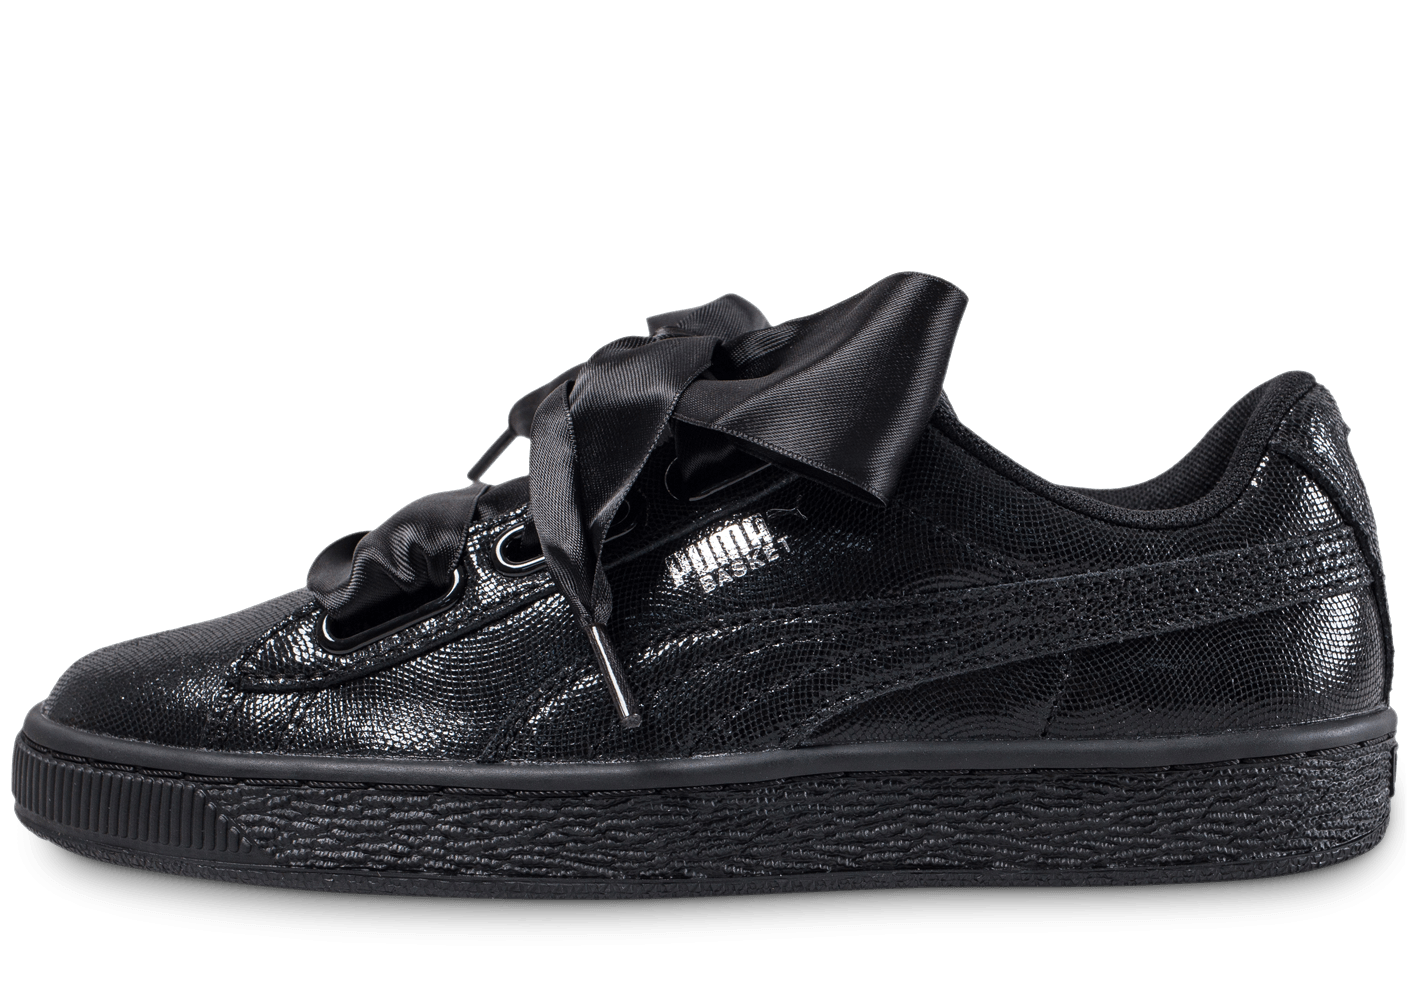 puma basket heart night sky noire chaussures femme chausport. Black Bedroom Furniture Sets. Home Design Ideas